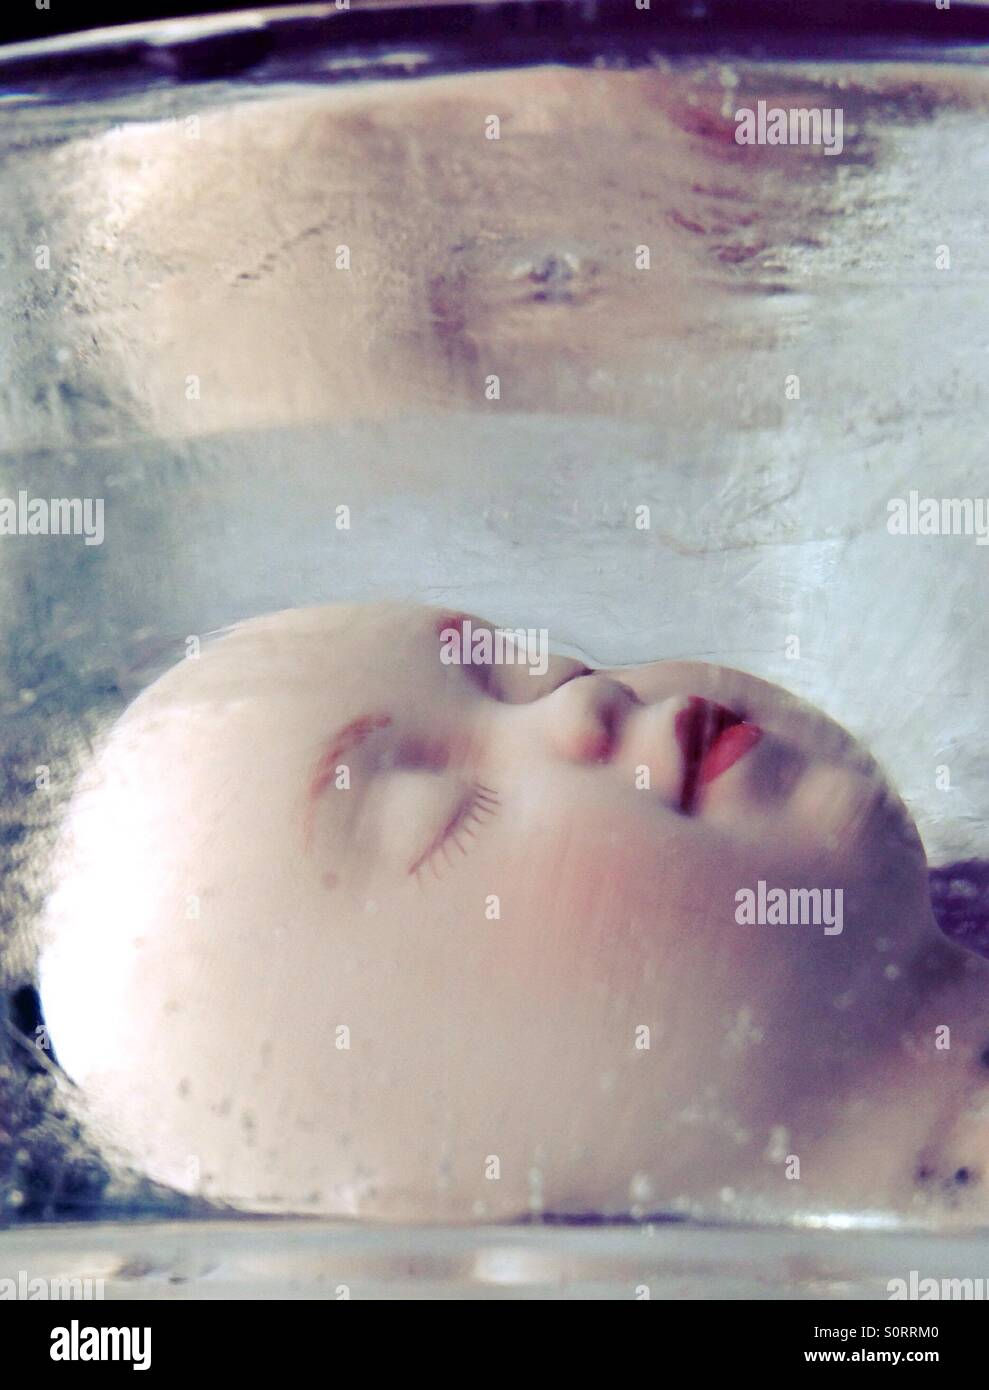 A creepy doll head frozen in ice. - Stock Image